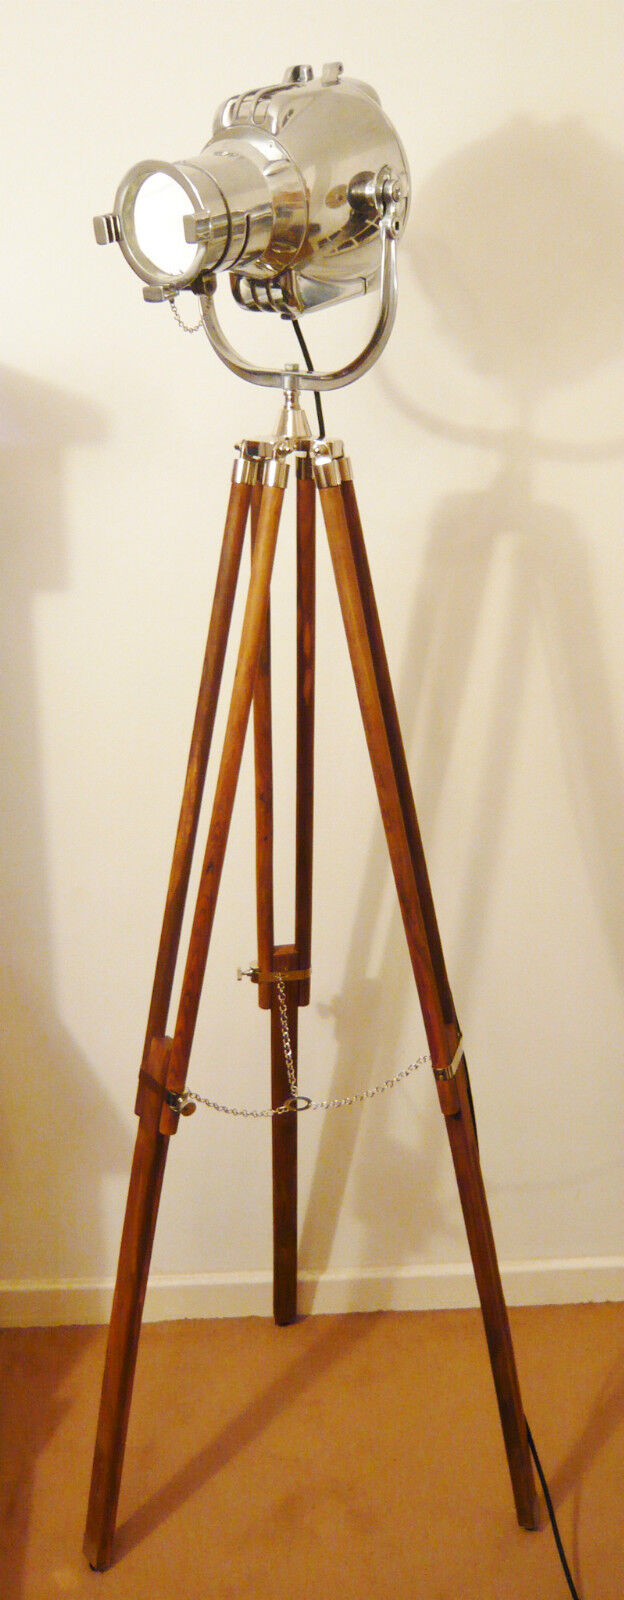 VINTAGE THEATRE LIGHT ANTIQUE FLOOR FILM STUDIO LAMP _57